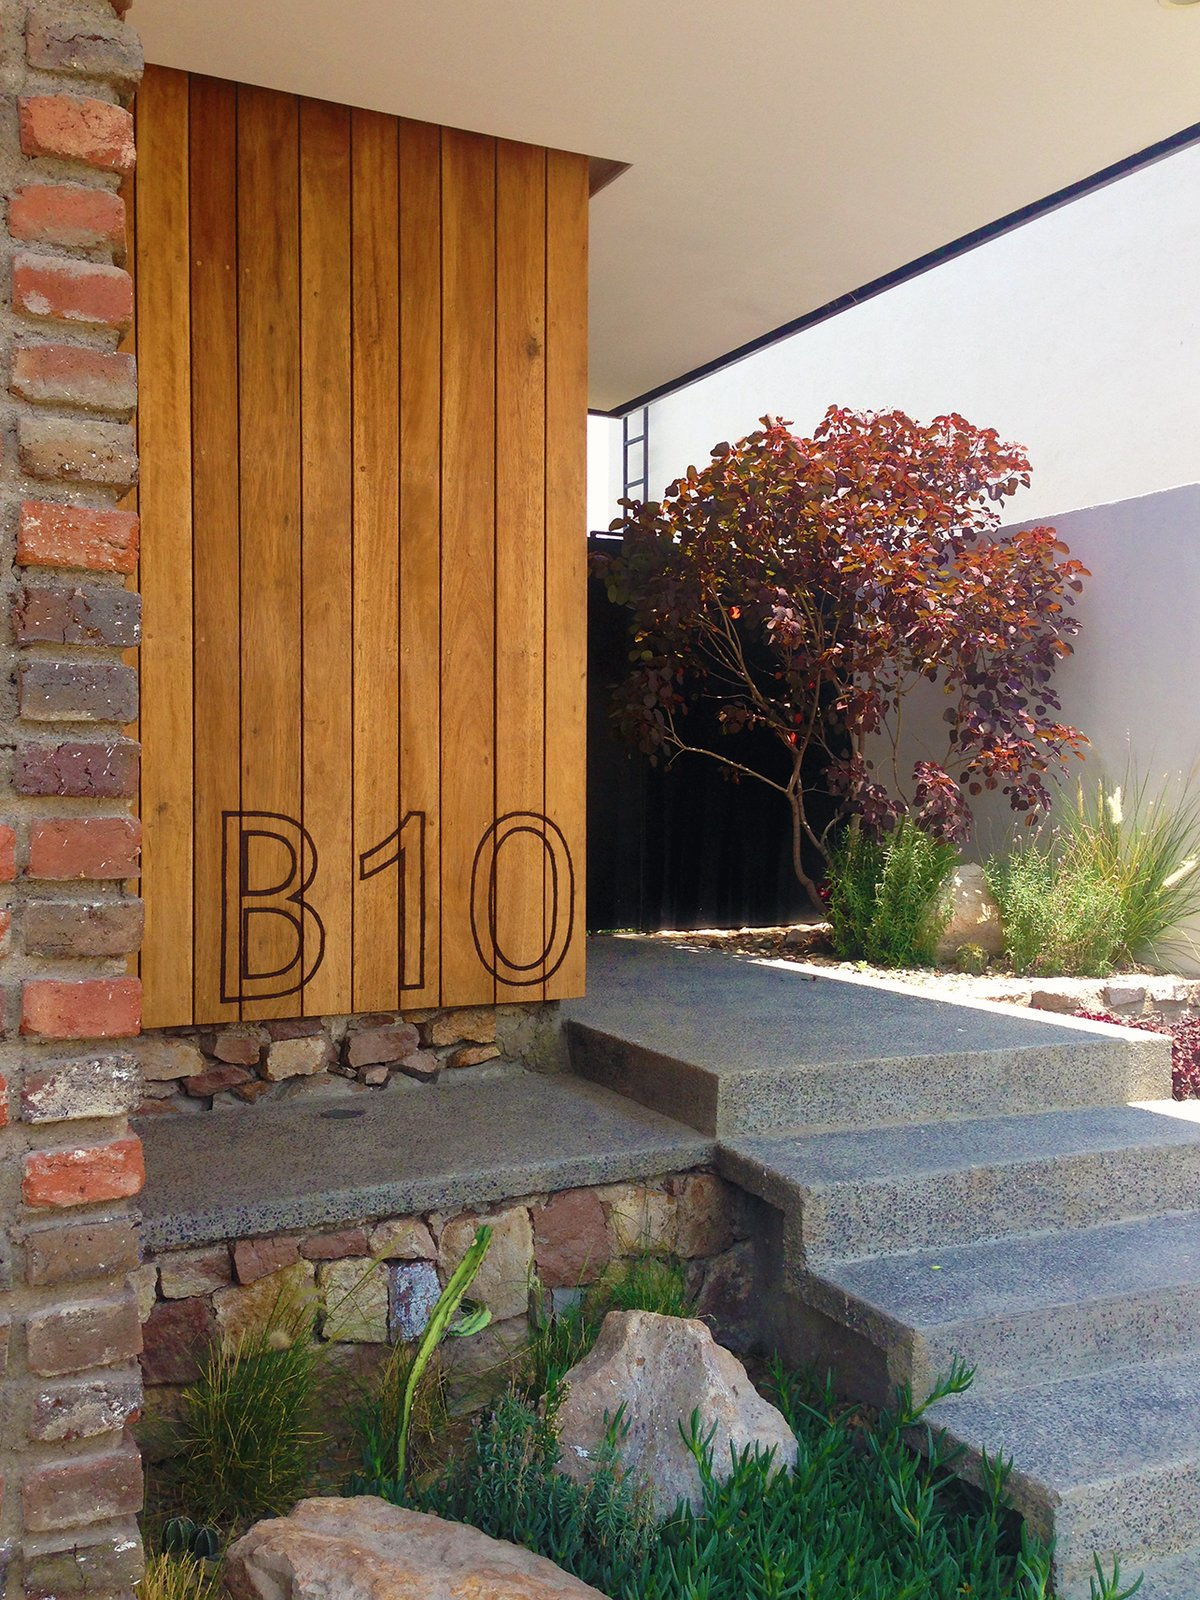 Outdoor, Hardscapes, Grass, Gardens, Flowers, Garden, and Front Yard Front Yard - Hardscape  Casa MA by e|arquitectos